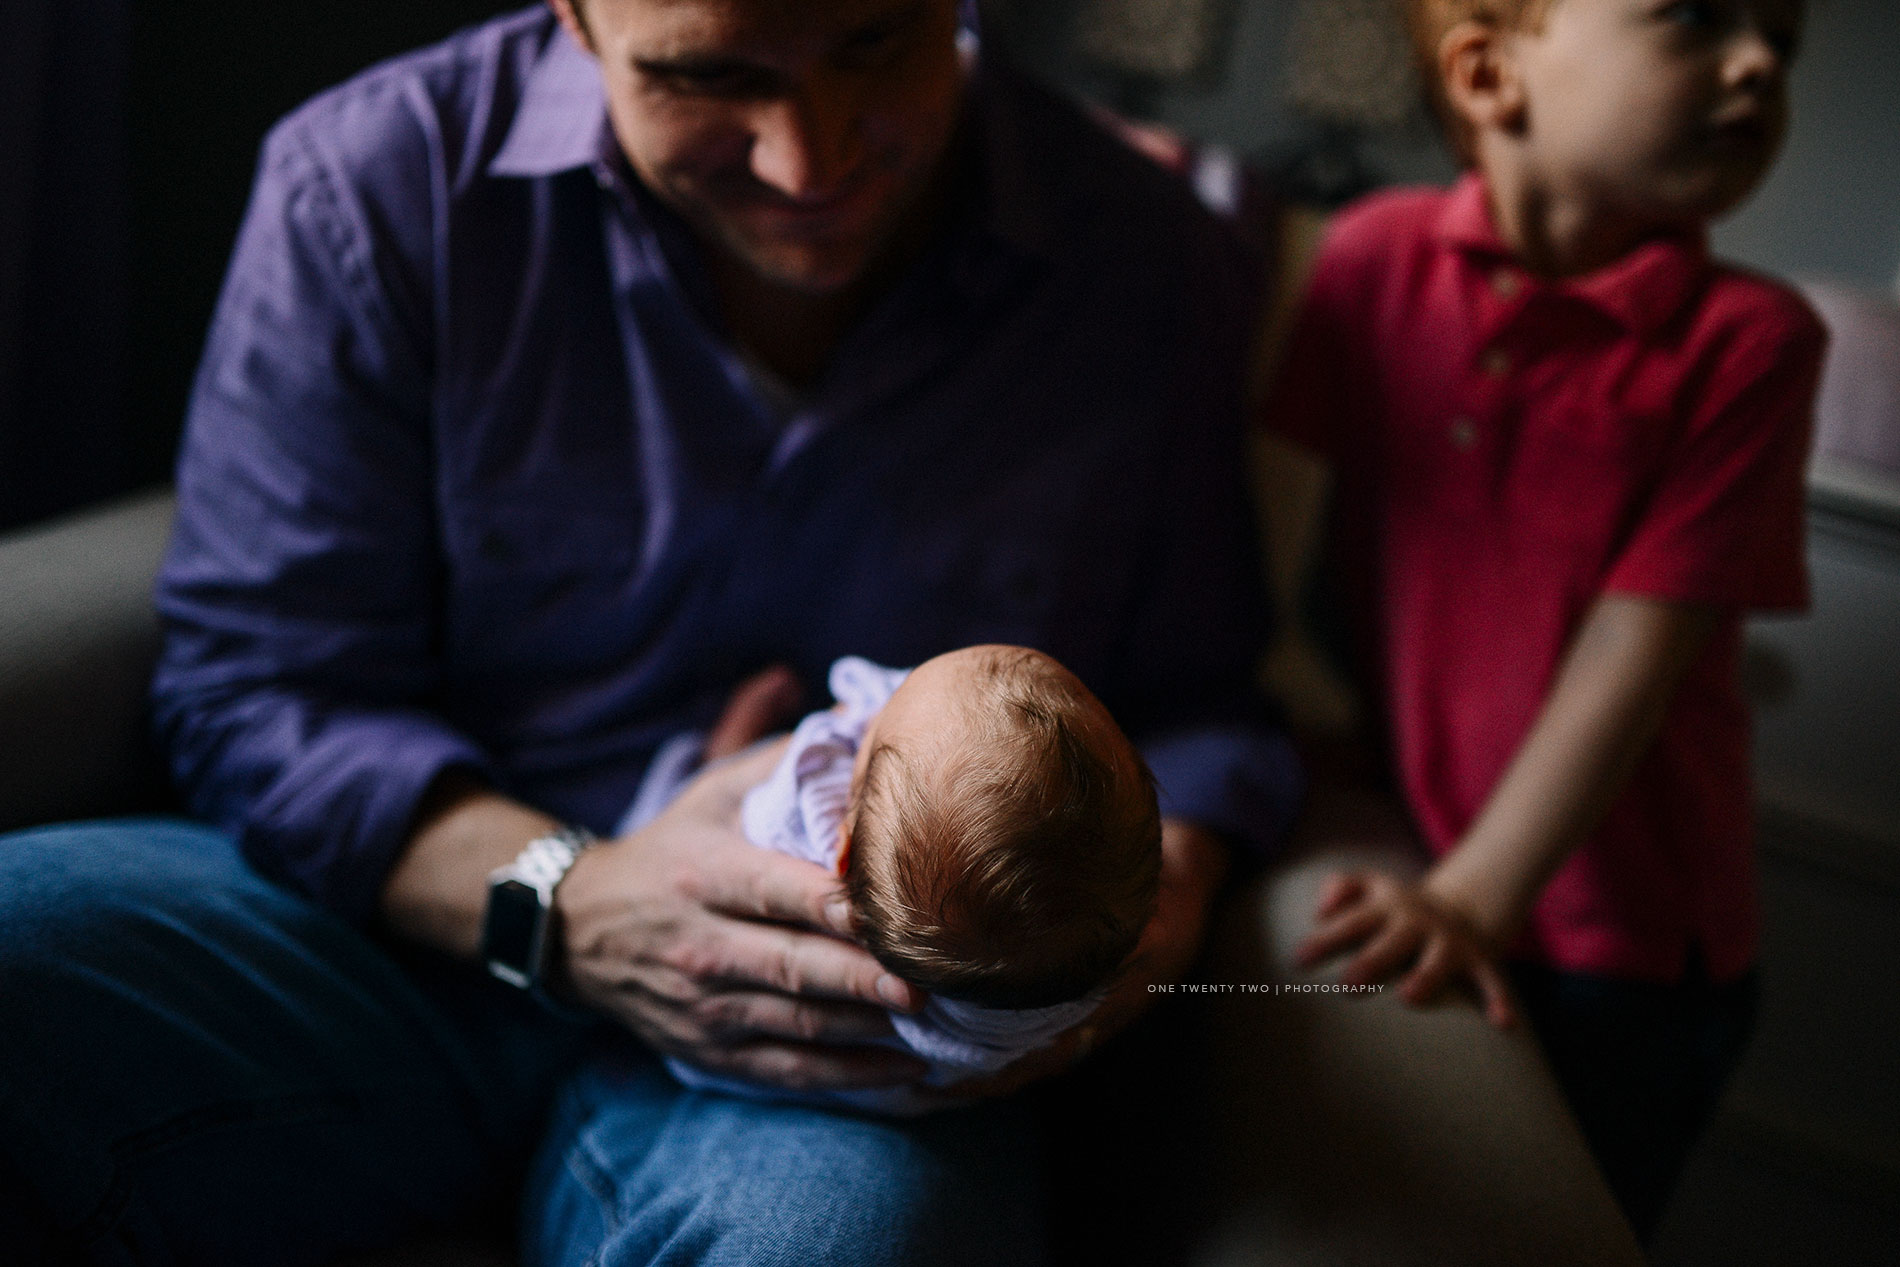 dad-son-and-newborn-pic-in-nursery-st-louis-one-twenty-two-photography.jpg